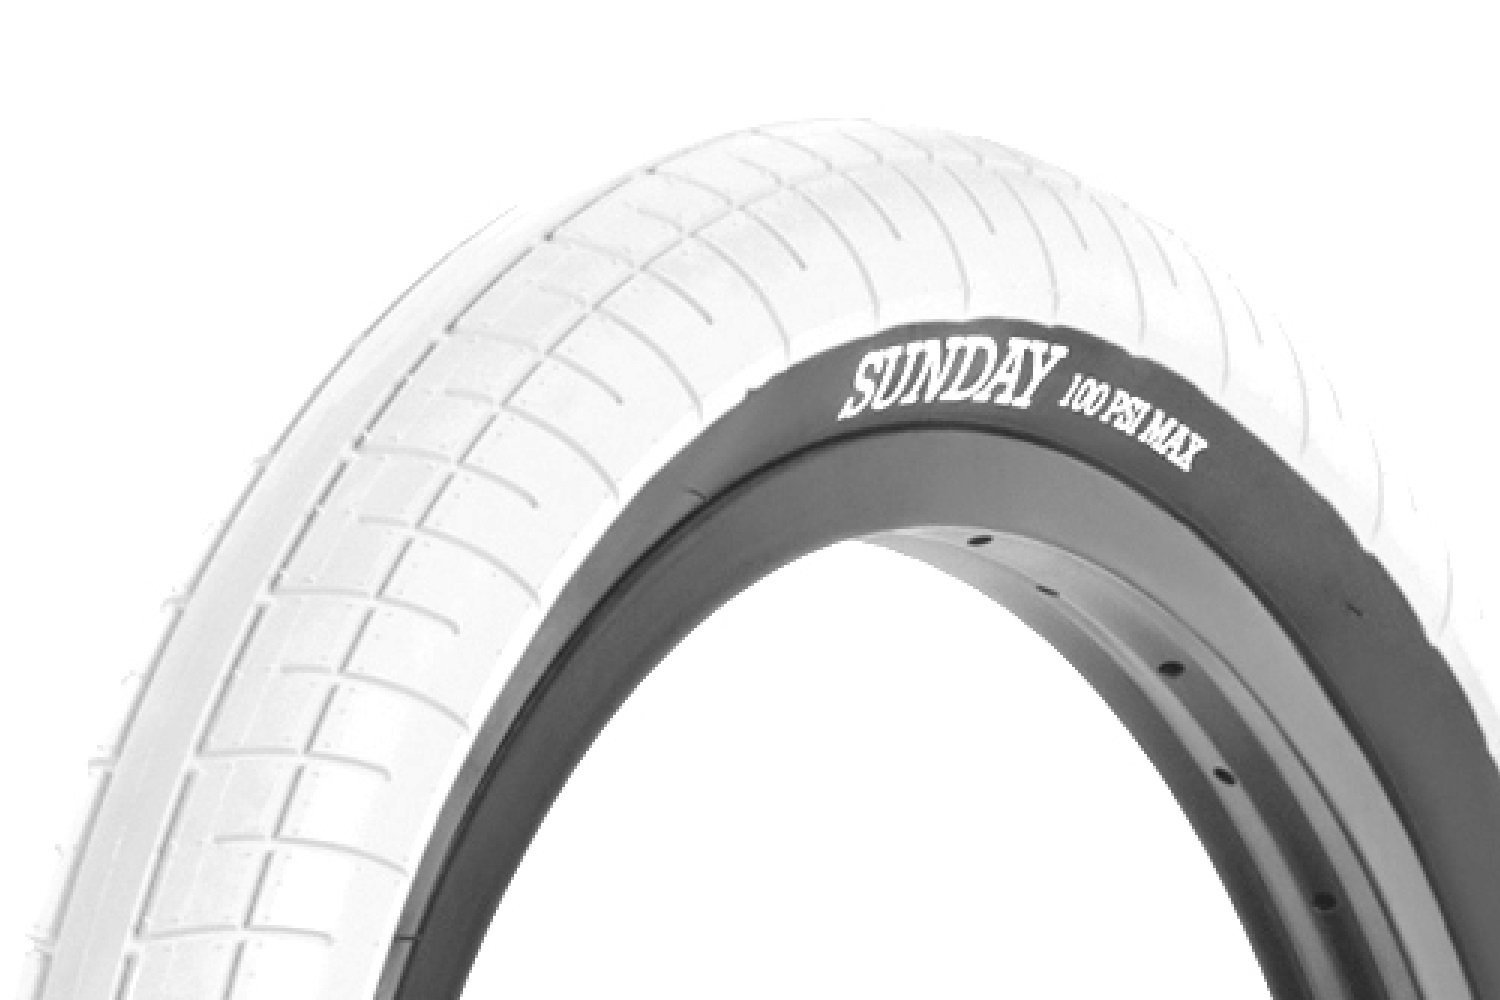 Sunday Street Sweeper Tire